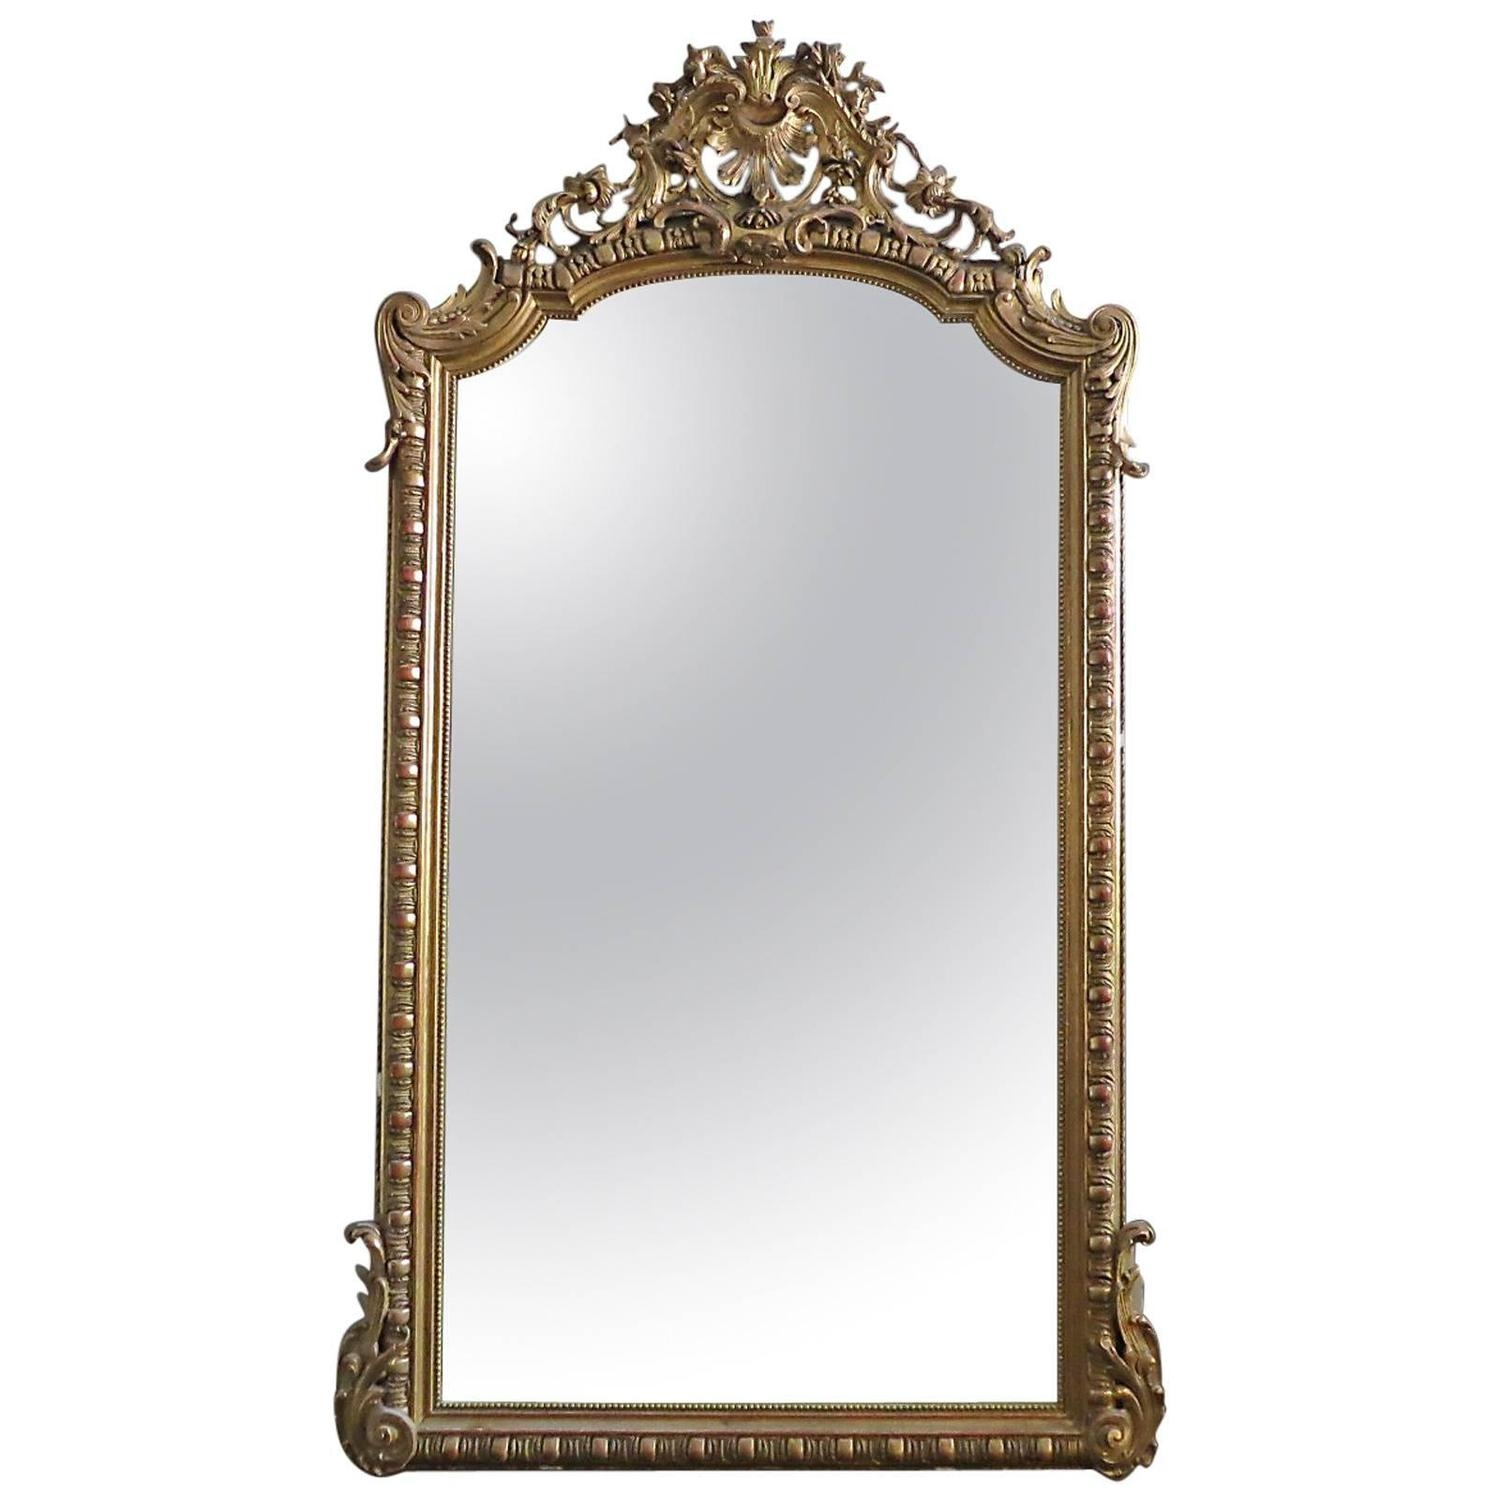 Large Antique French Gold Gilt Mirror At 1stdibs With Regard To Gilt Mirrors For Sale (Image 8 of 15)